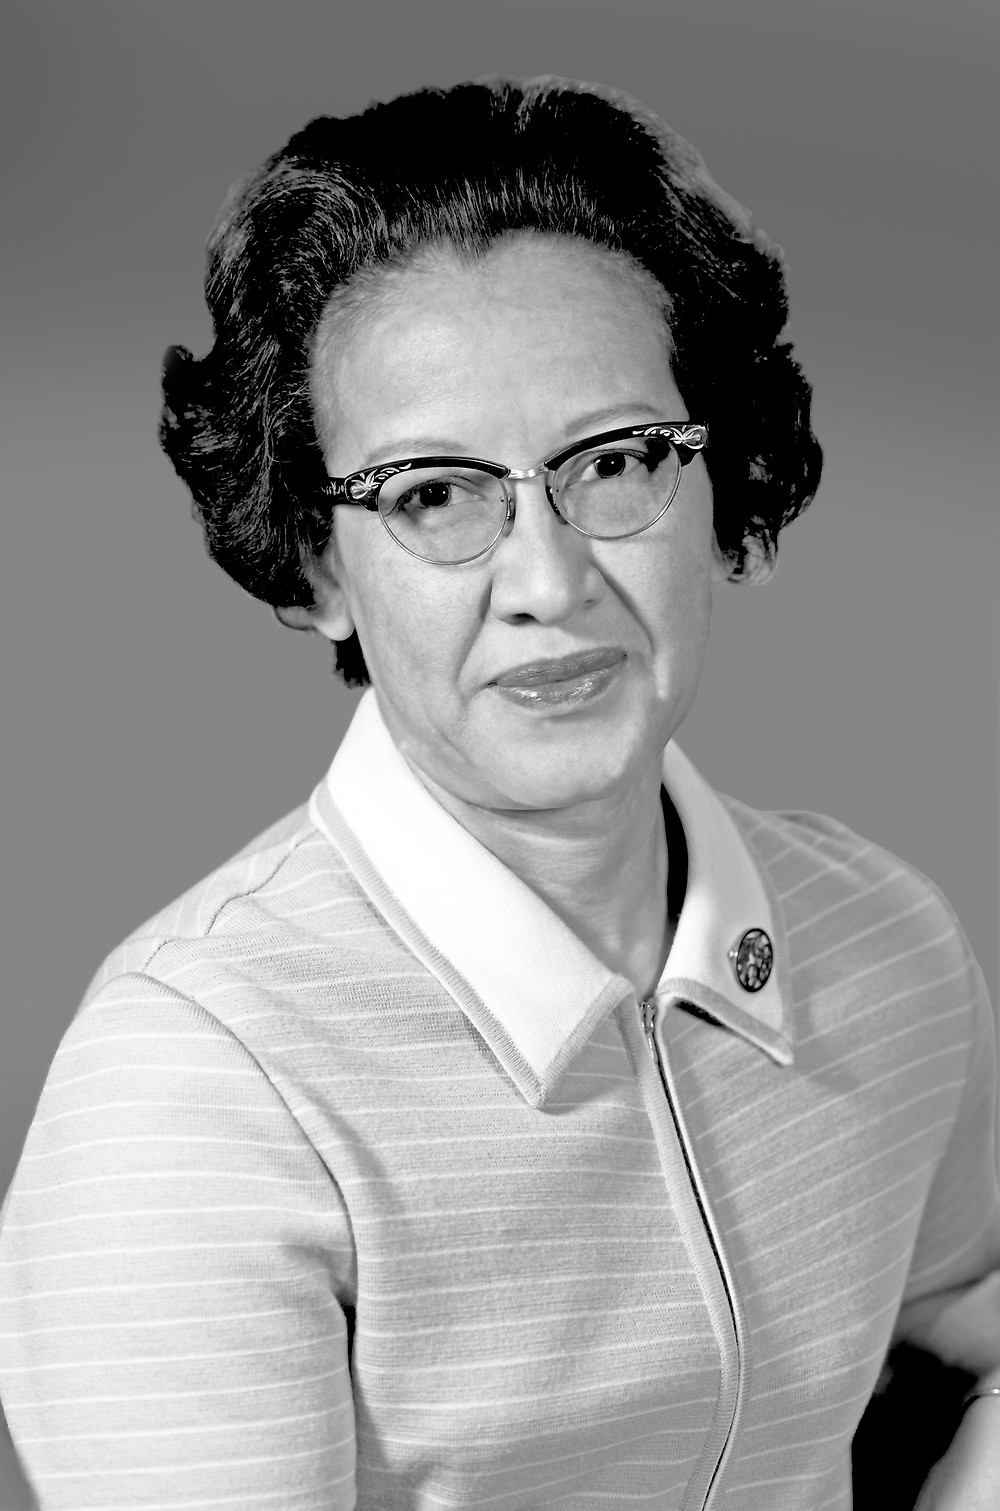 This is a black-and-white portrait of Katherine Johnson, a Black woman with short, black hair. She's wearing glasses and a light colored, striped, collar shirt.